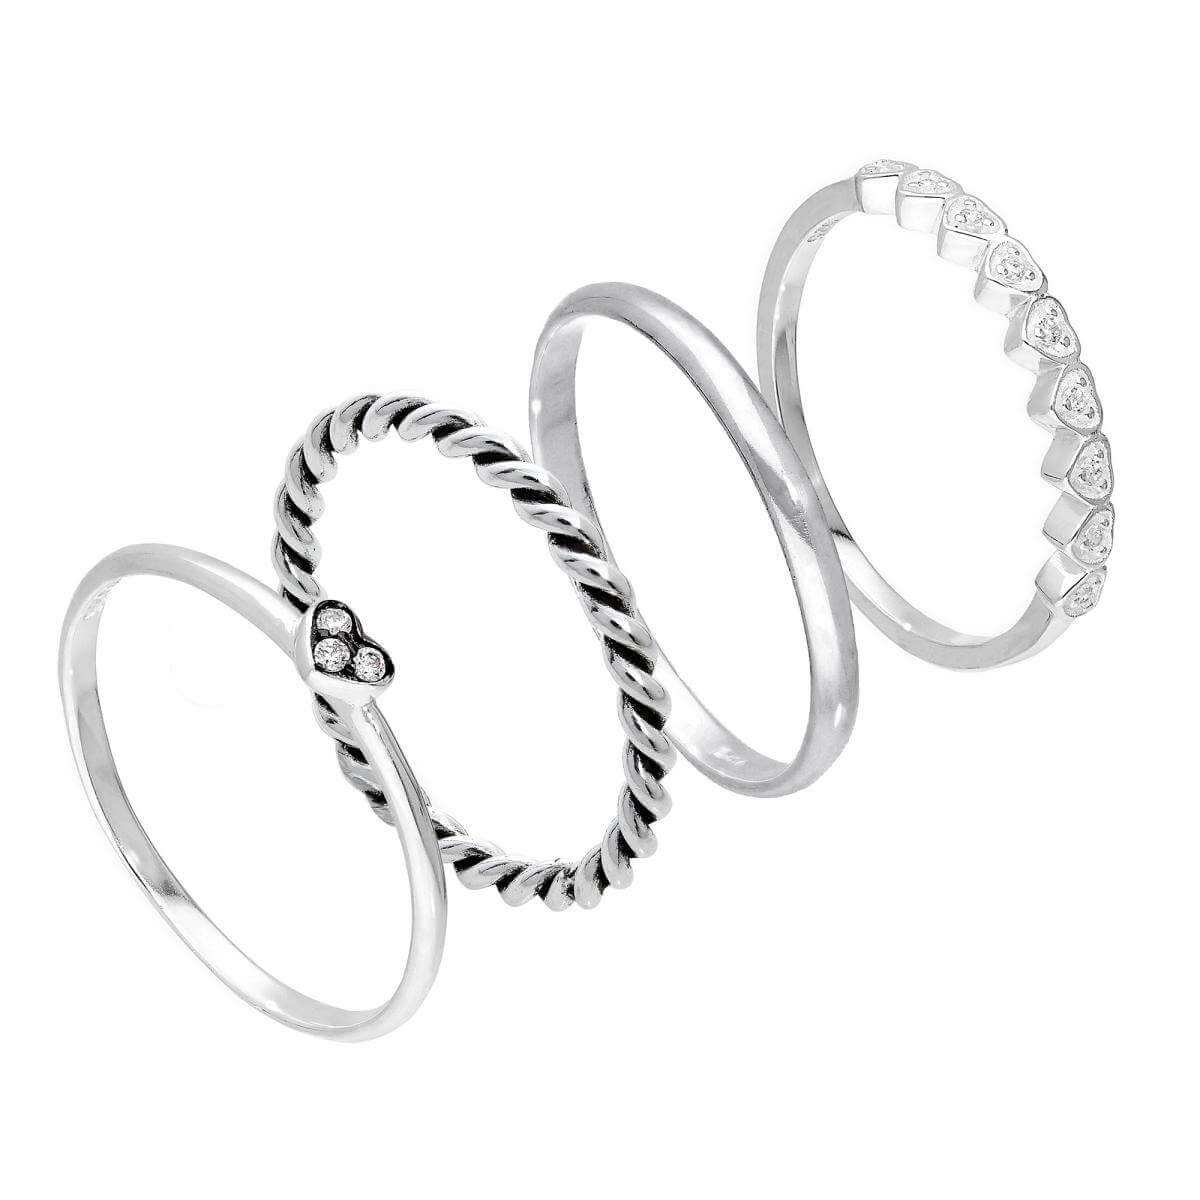 Sterling Silver CZ Love Hearts Twisted Plain Stacking Rings Set